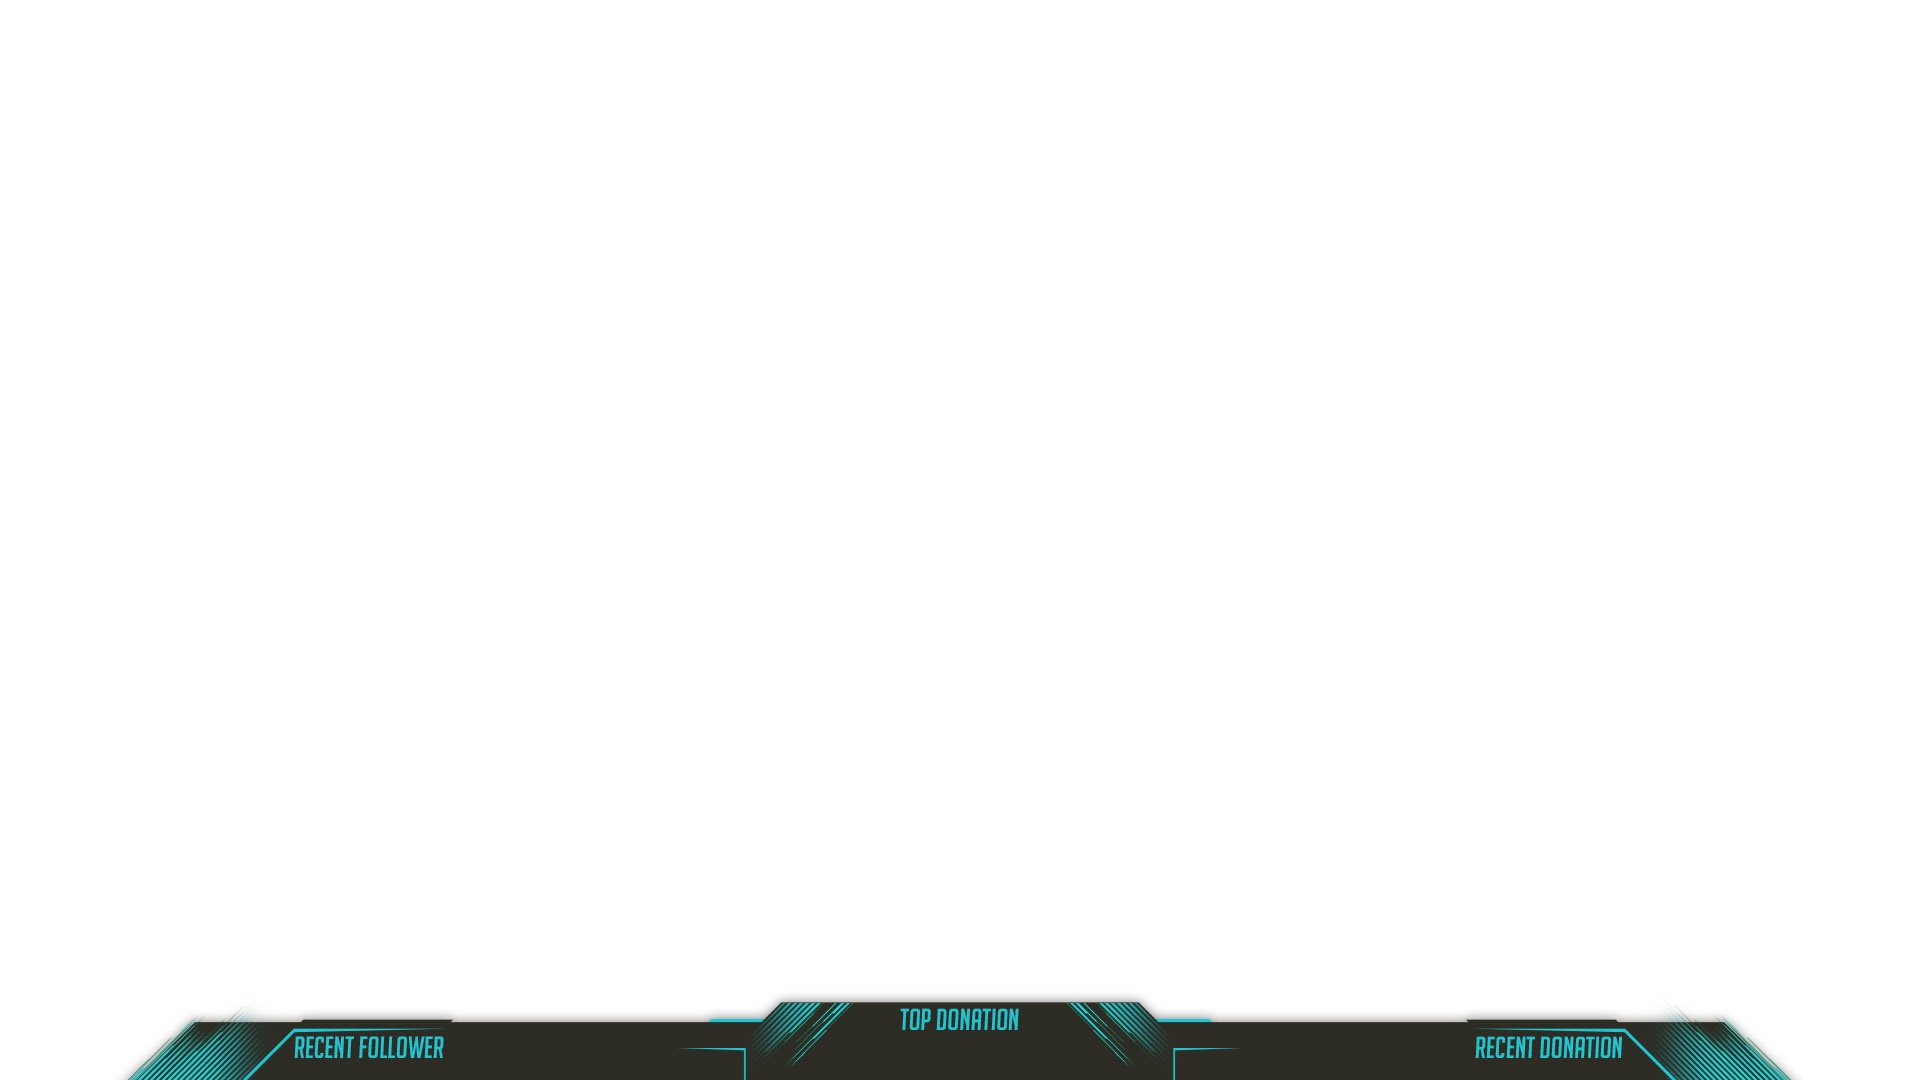 Overlay for Twitch overlay ideas